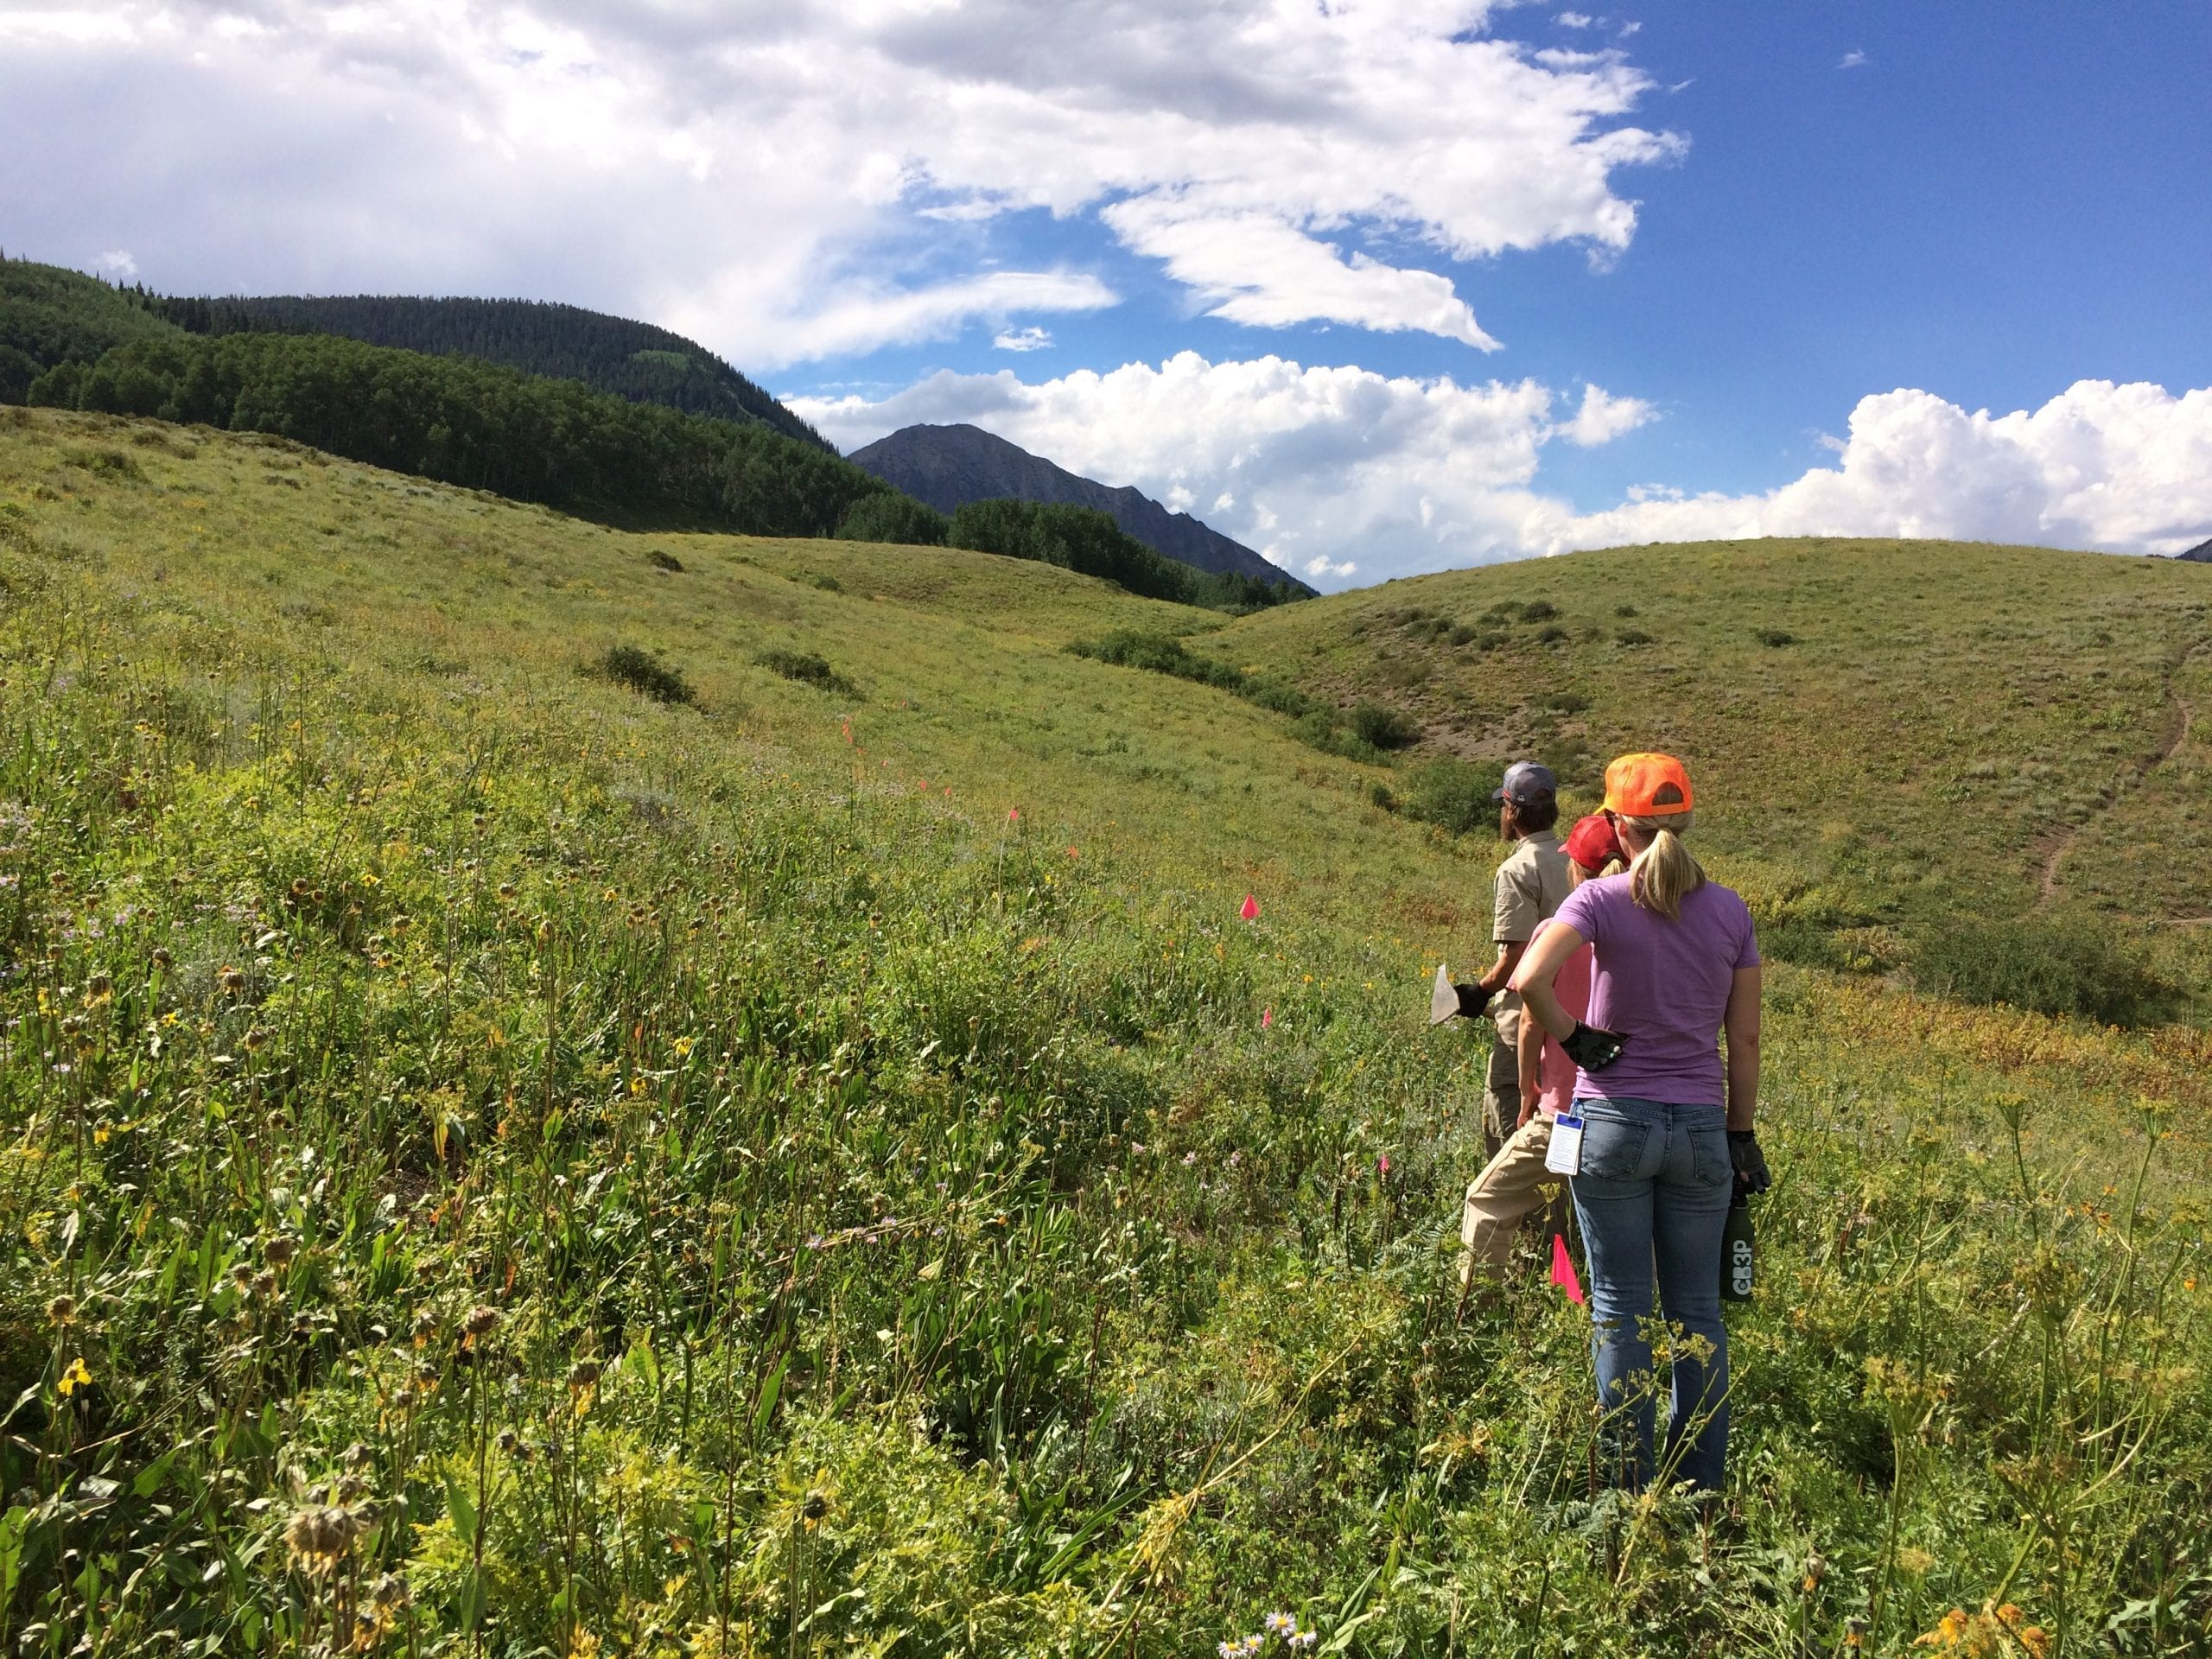 Wwf Trail Work Training Brought To You By Rocky Mountain Trees And